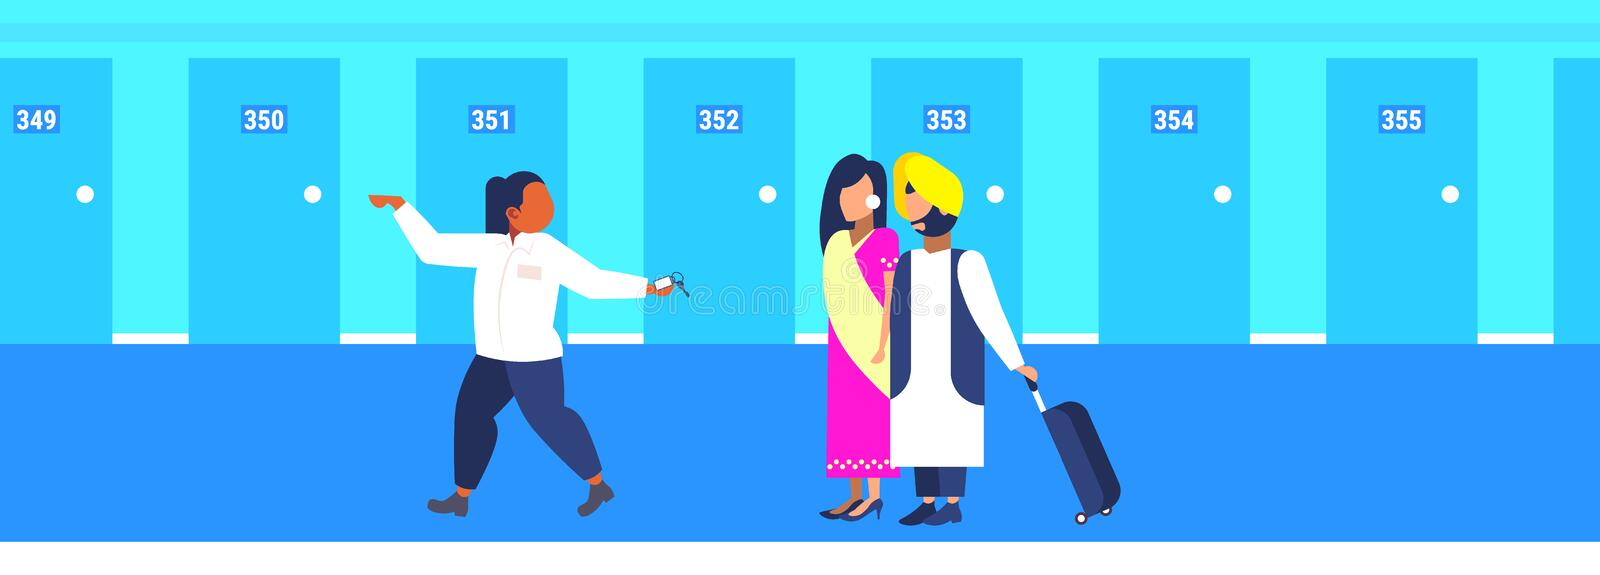 Hotel manager leading indian guests hospitality staff concept receptionist showing room welcoming arriving man woman. Tourists couple in traditional clothes royalty free illustration